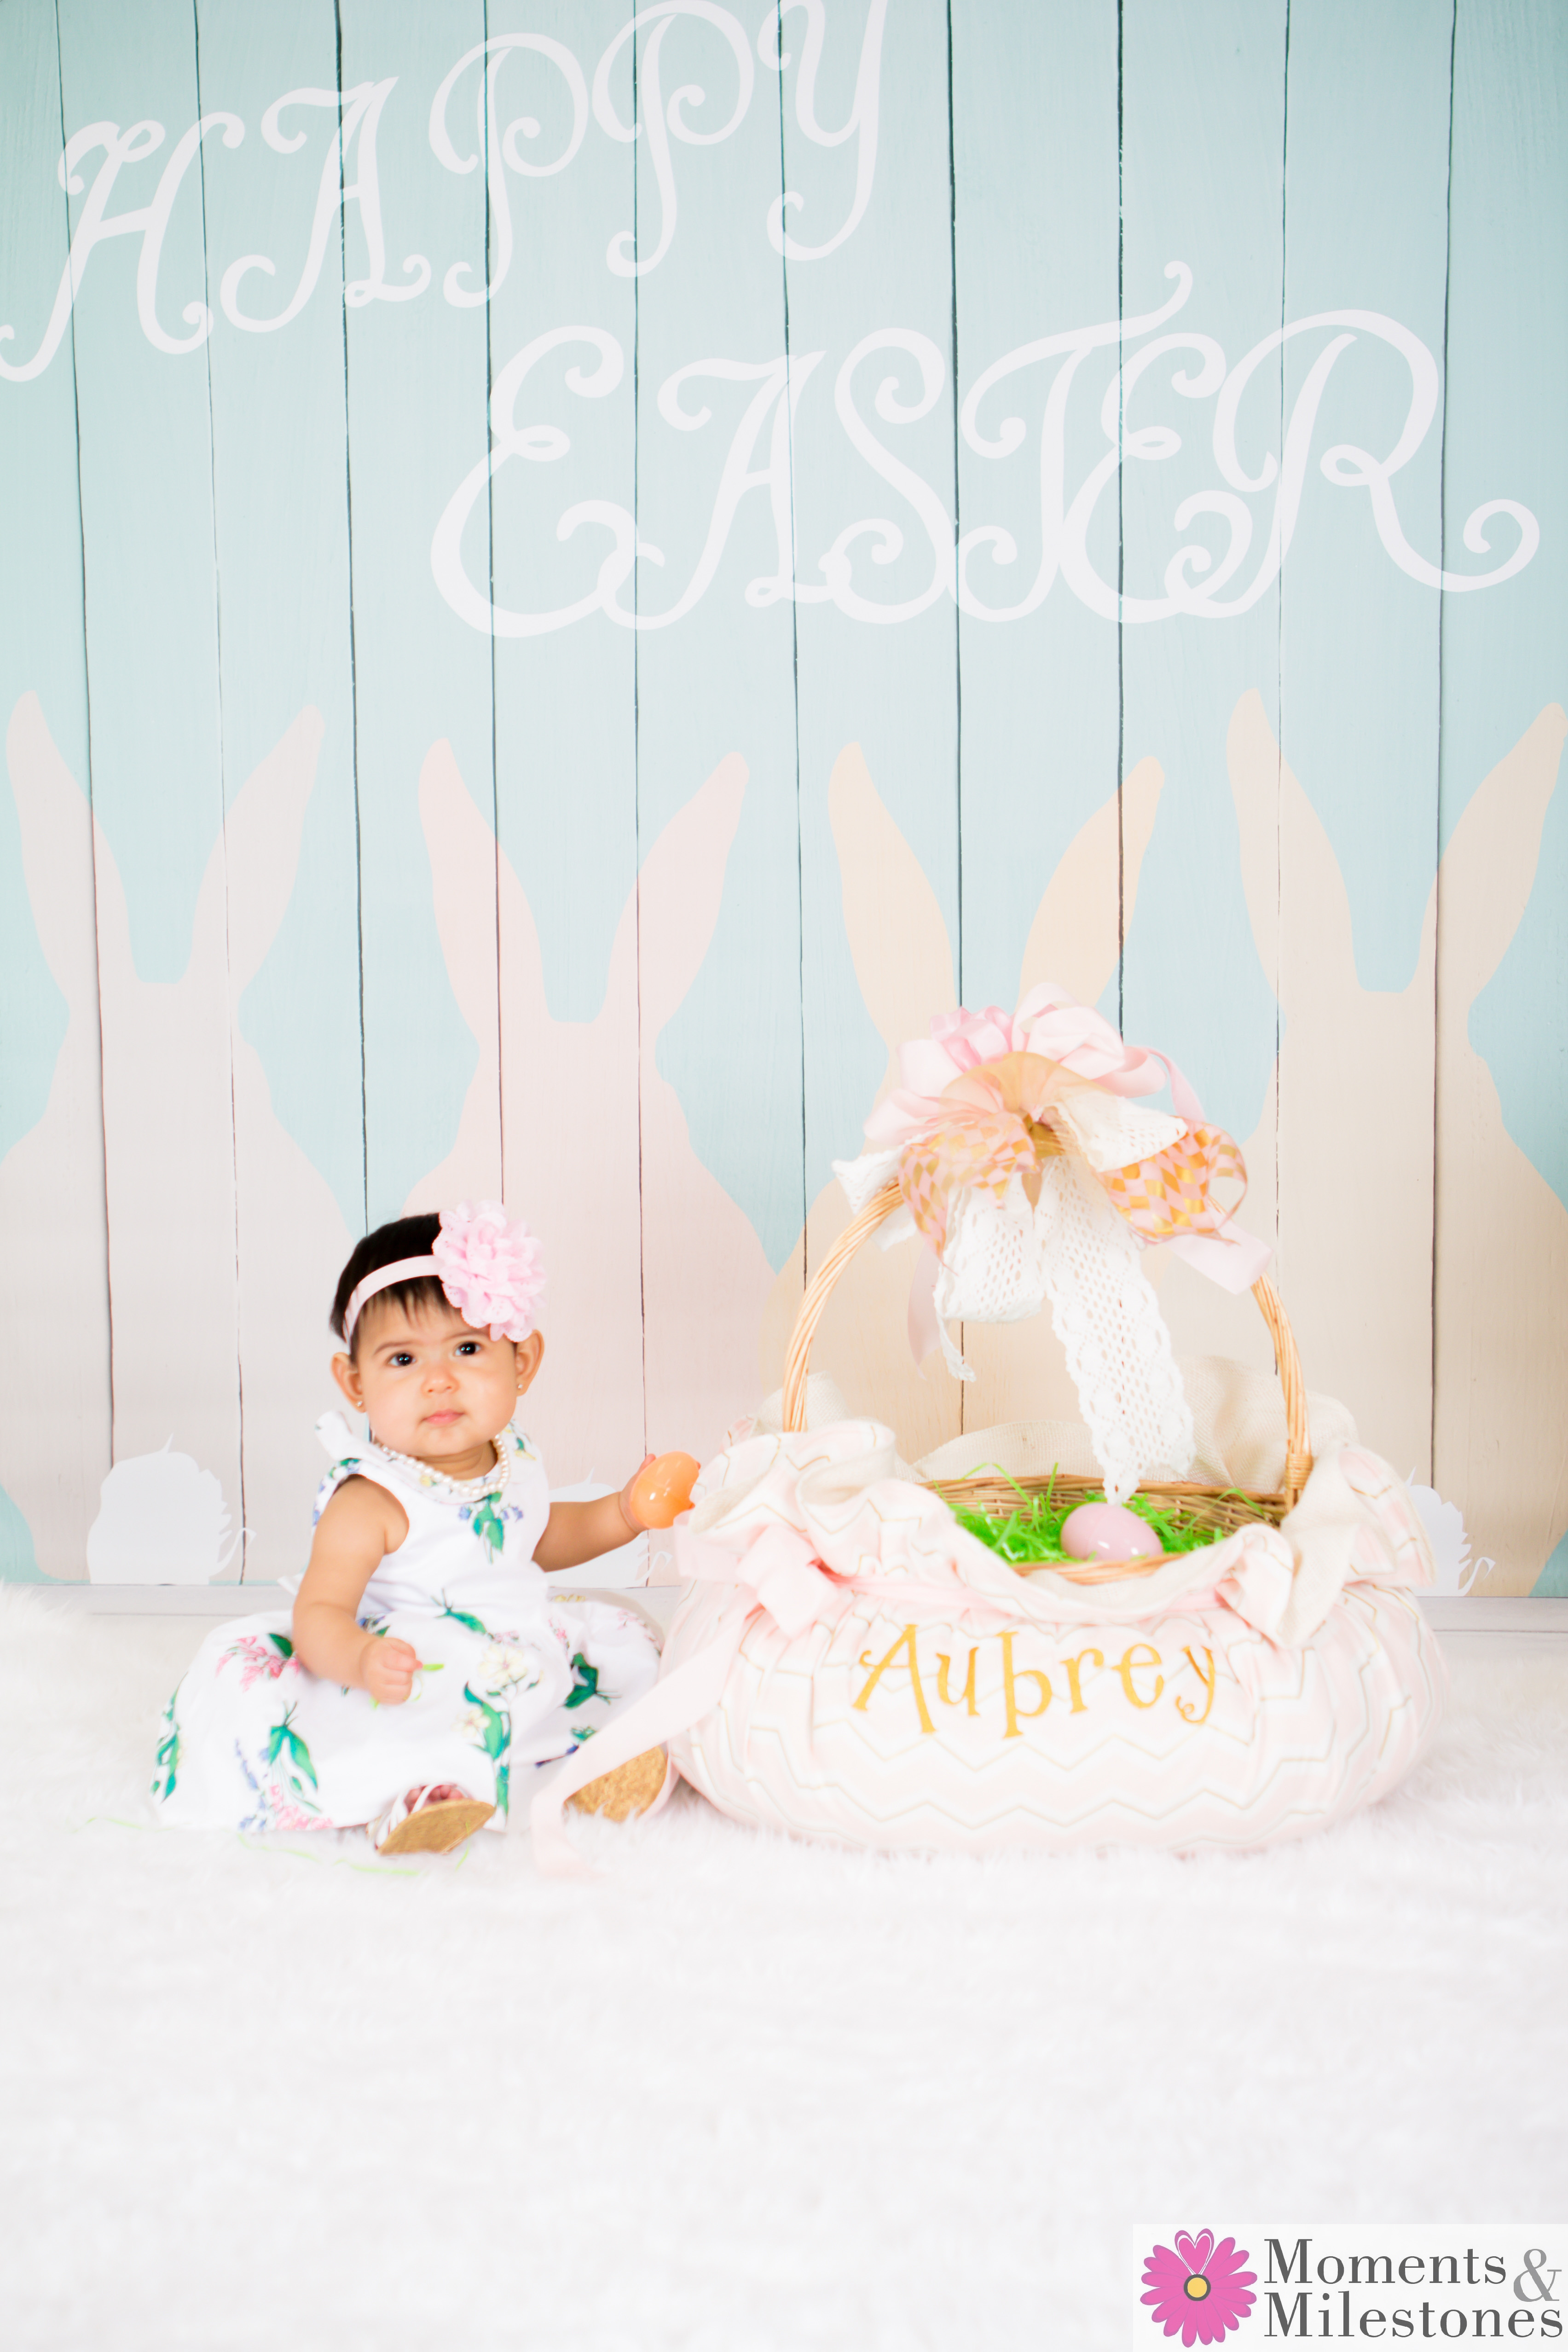 Easter Mini-Session Moments & Milestones Studio Photography San Antonio Family and Children Sessions (4)